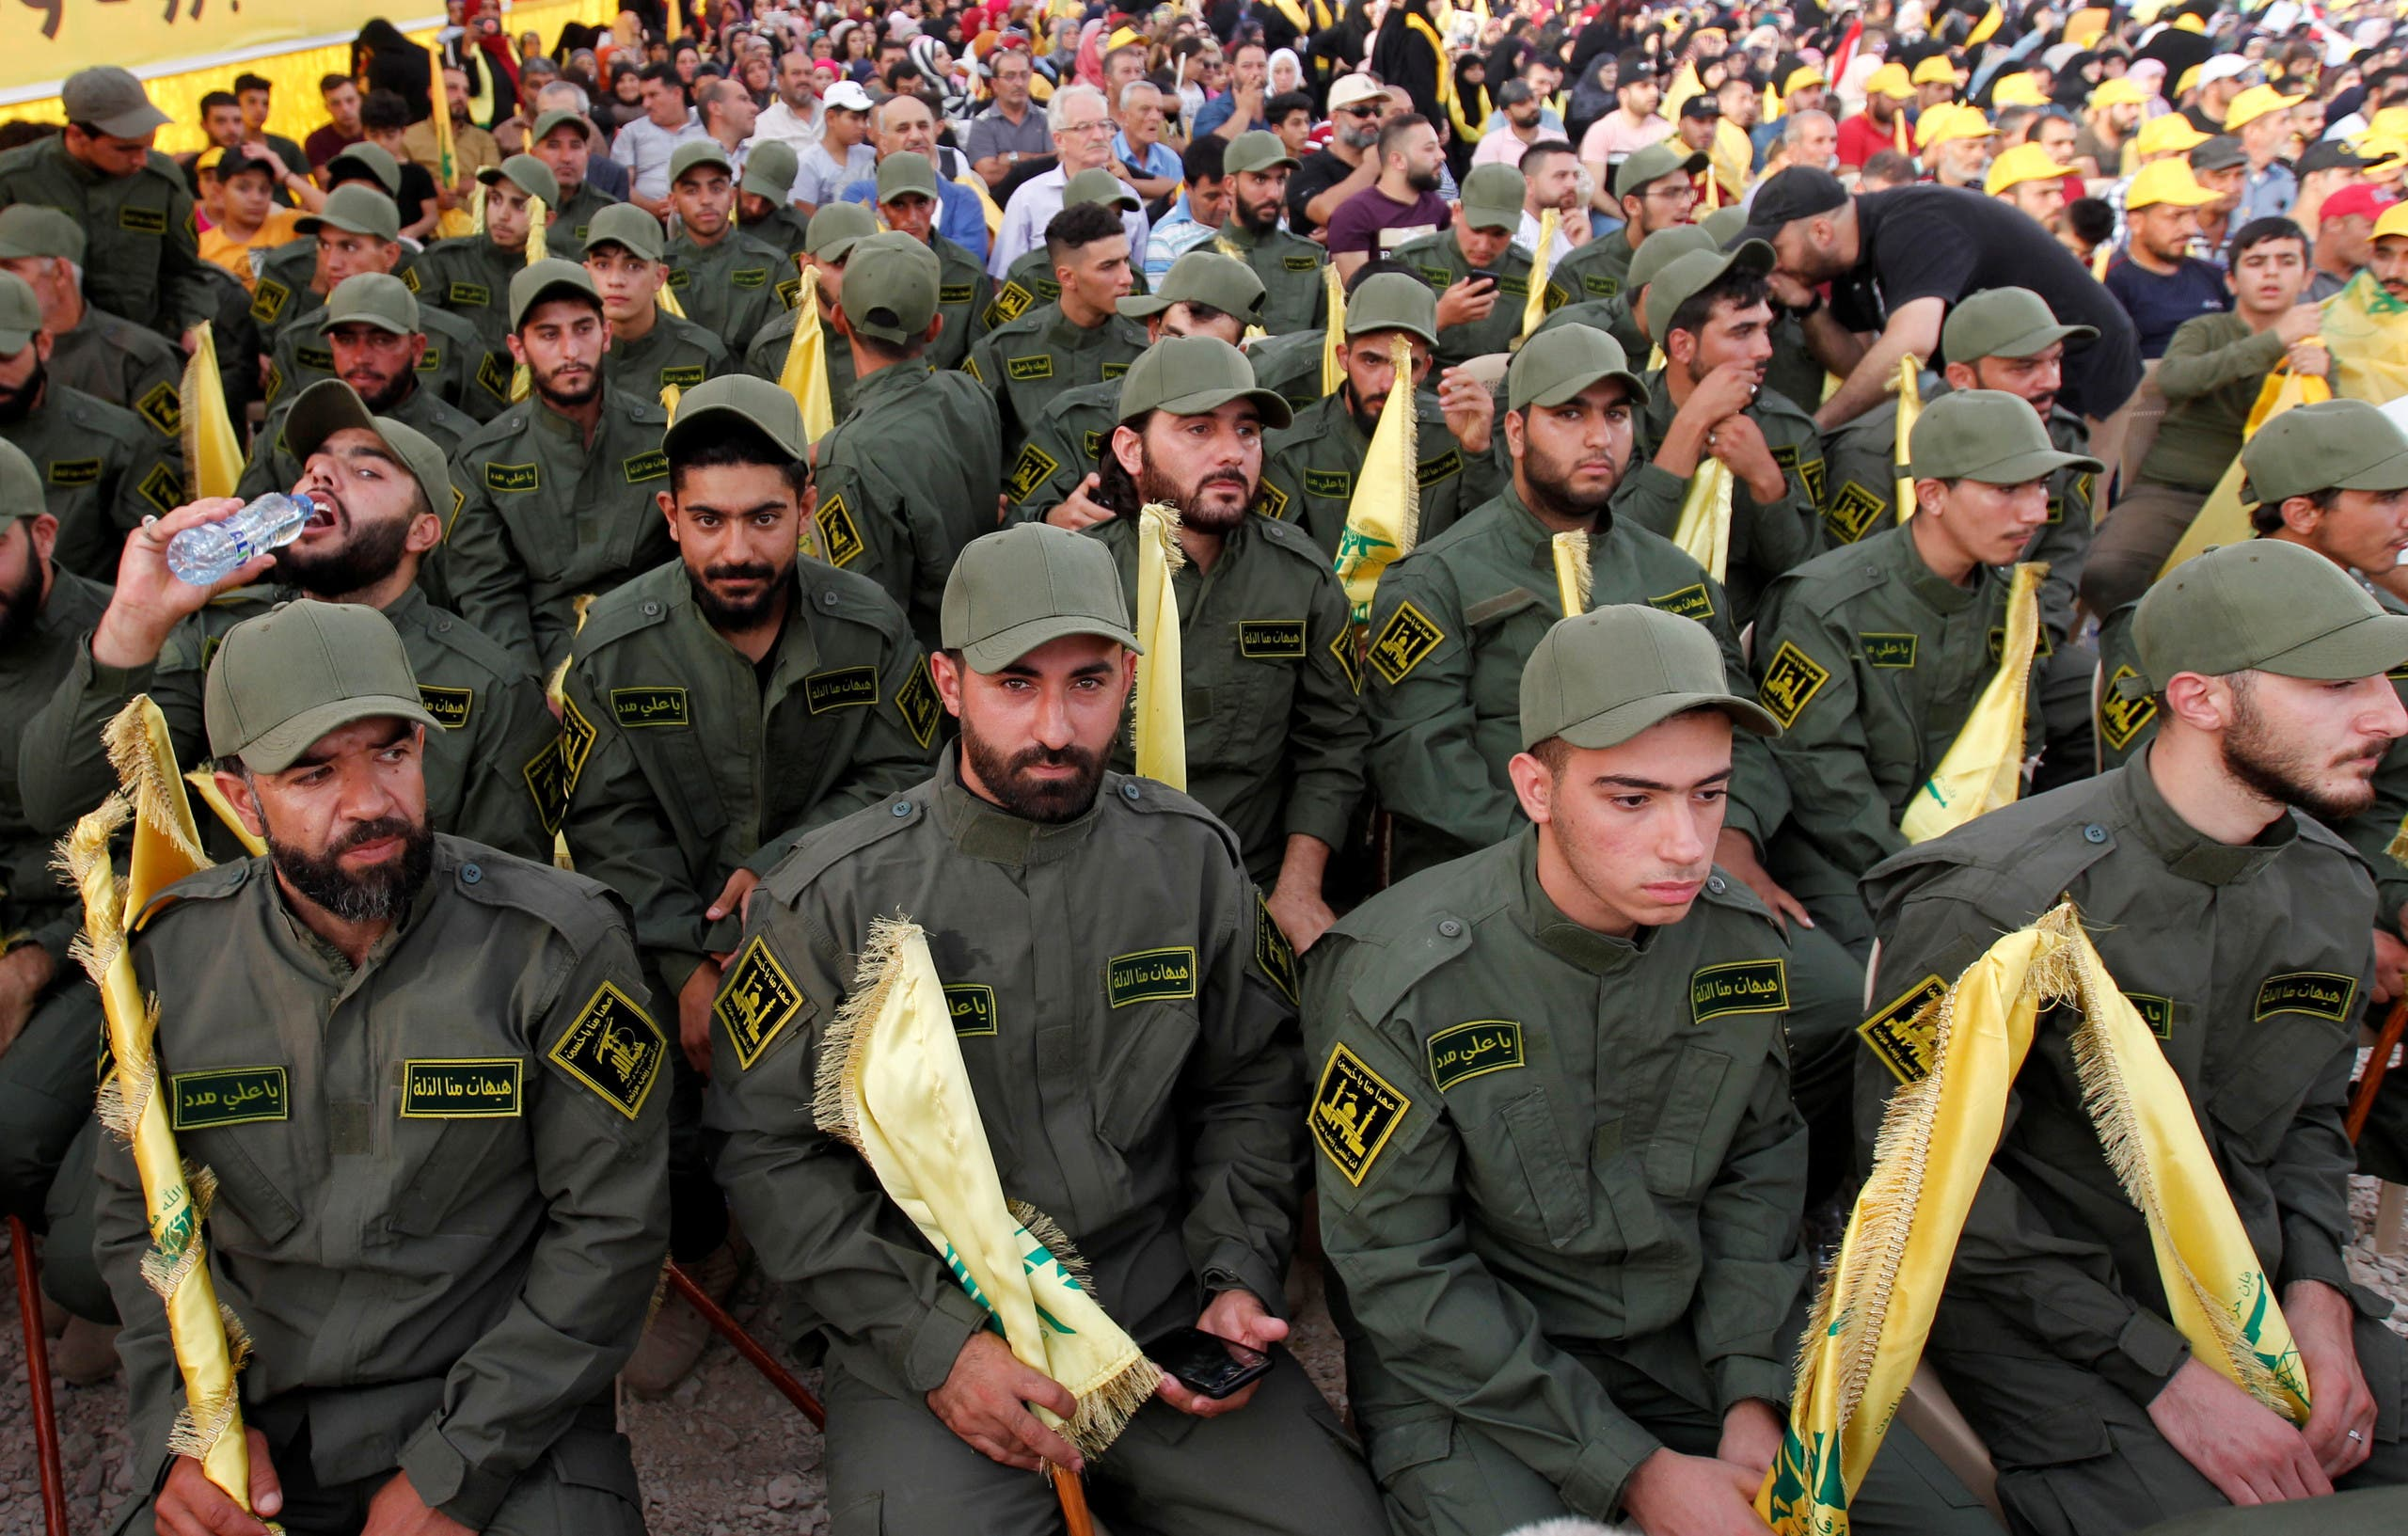 Lebanon's Hezbollah members hold party flags as they listen to their leader Hassan Nasrallah, Aug. 25, 2019. (Reuters)